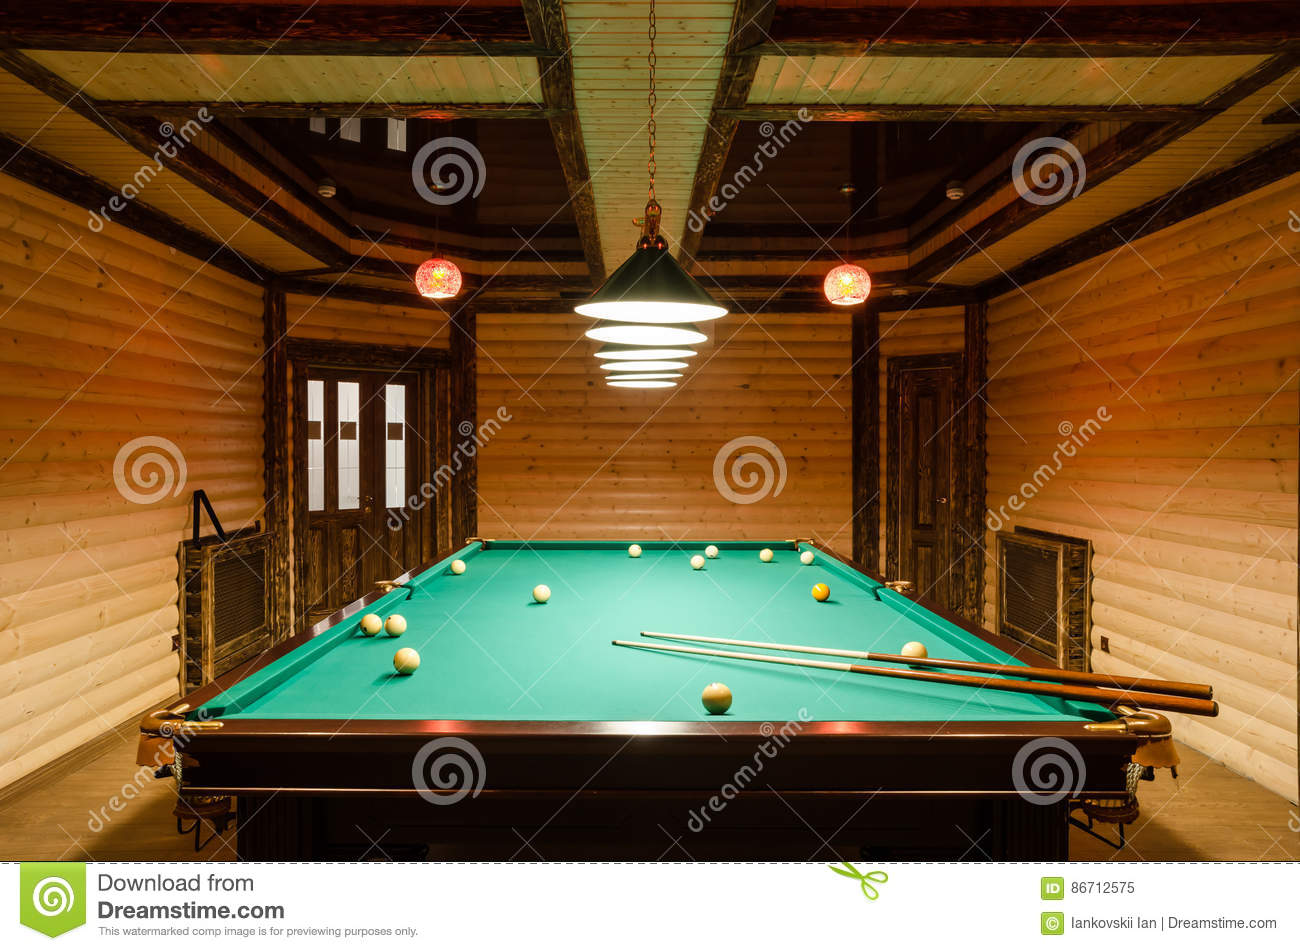 Room billiards decorated in dark wood with low lamps, billiard table with green cloth